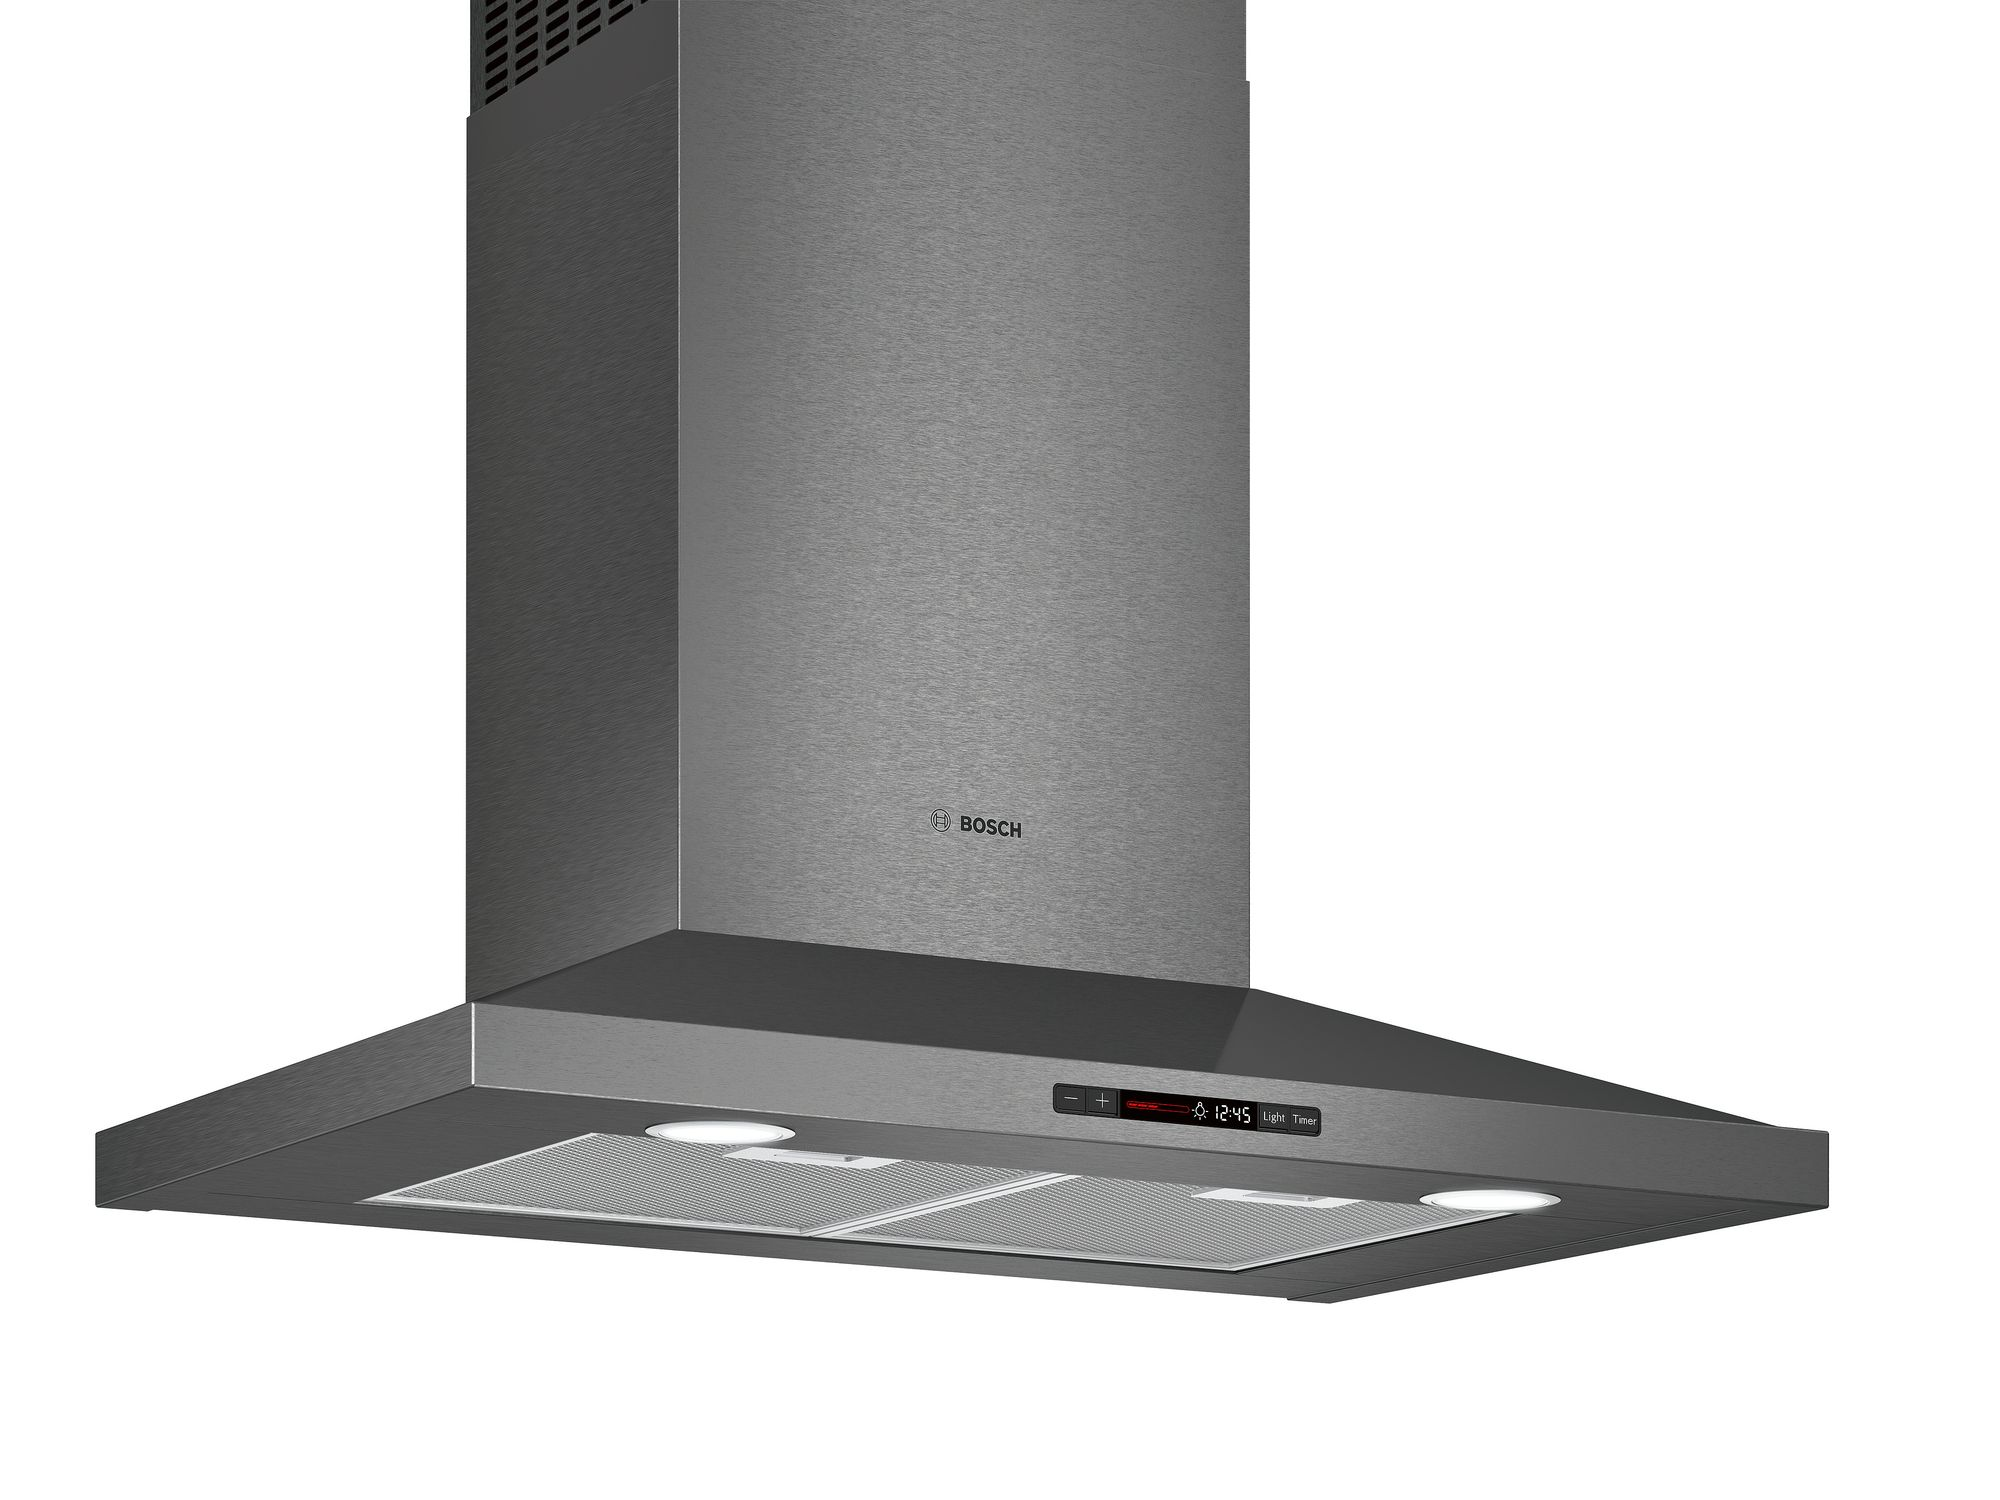 BOSCH | WALL-CHIMNEY HOODS | 800 SERIES | BLACK STAINLESS.jpg